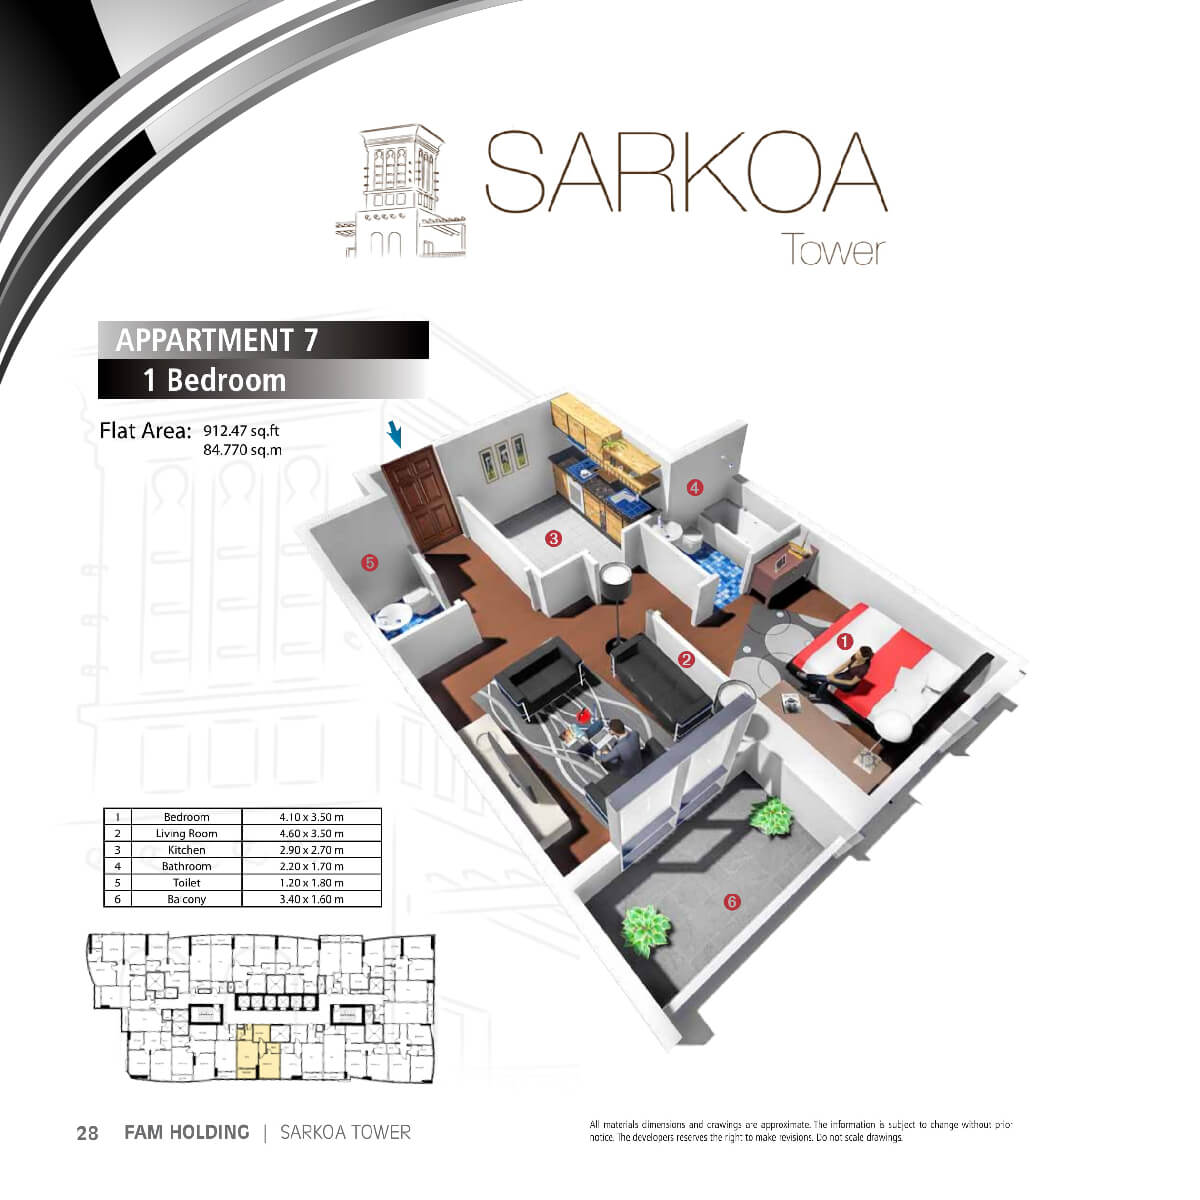 Planning of the apartment 1BR, 912.47 in Sarkoa Tower, Sharjah